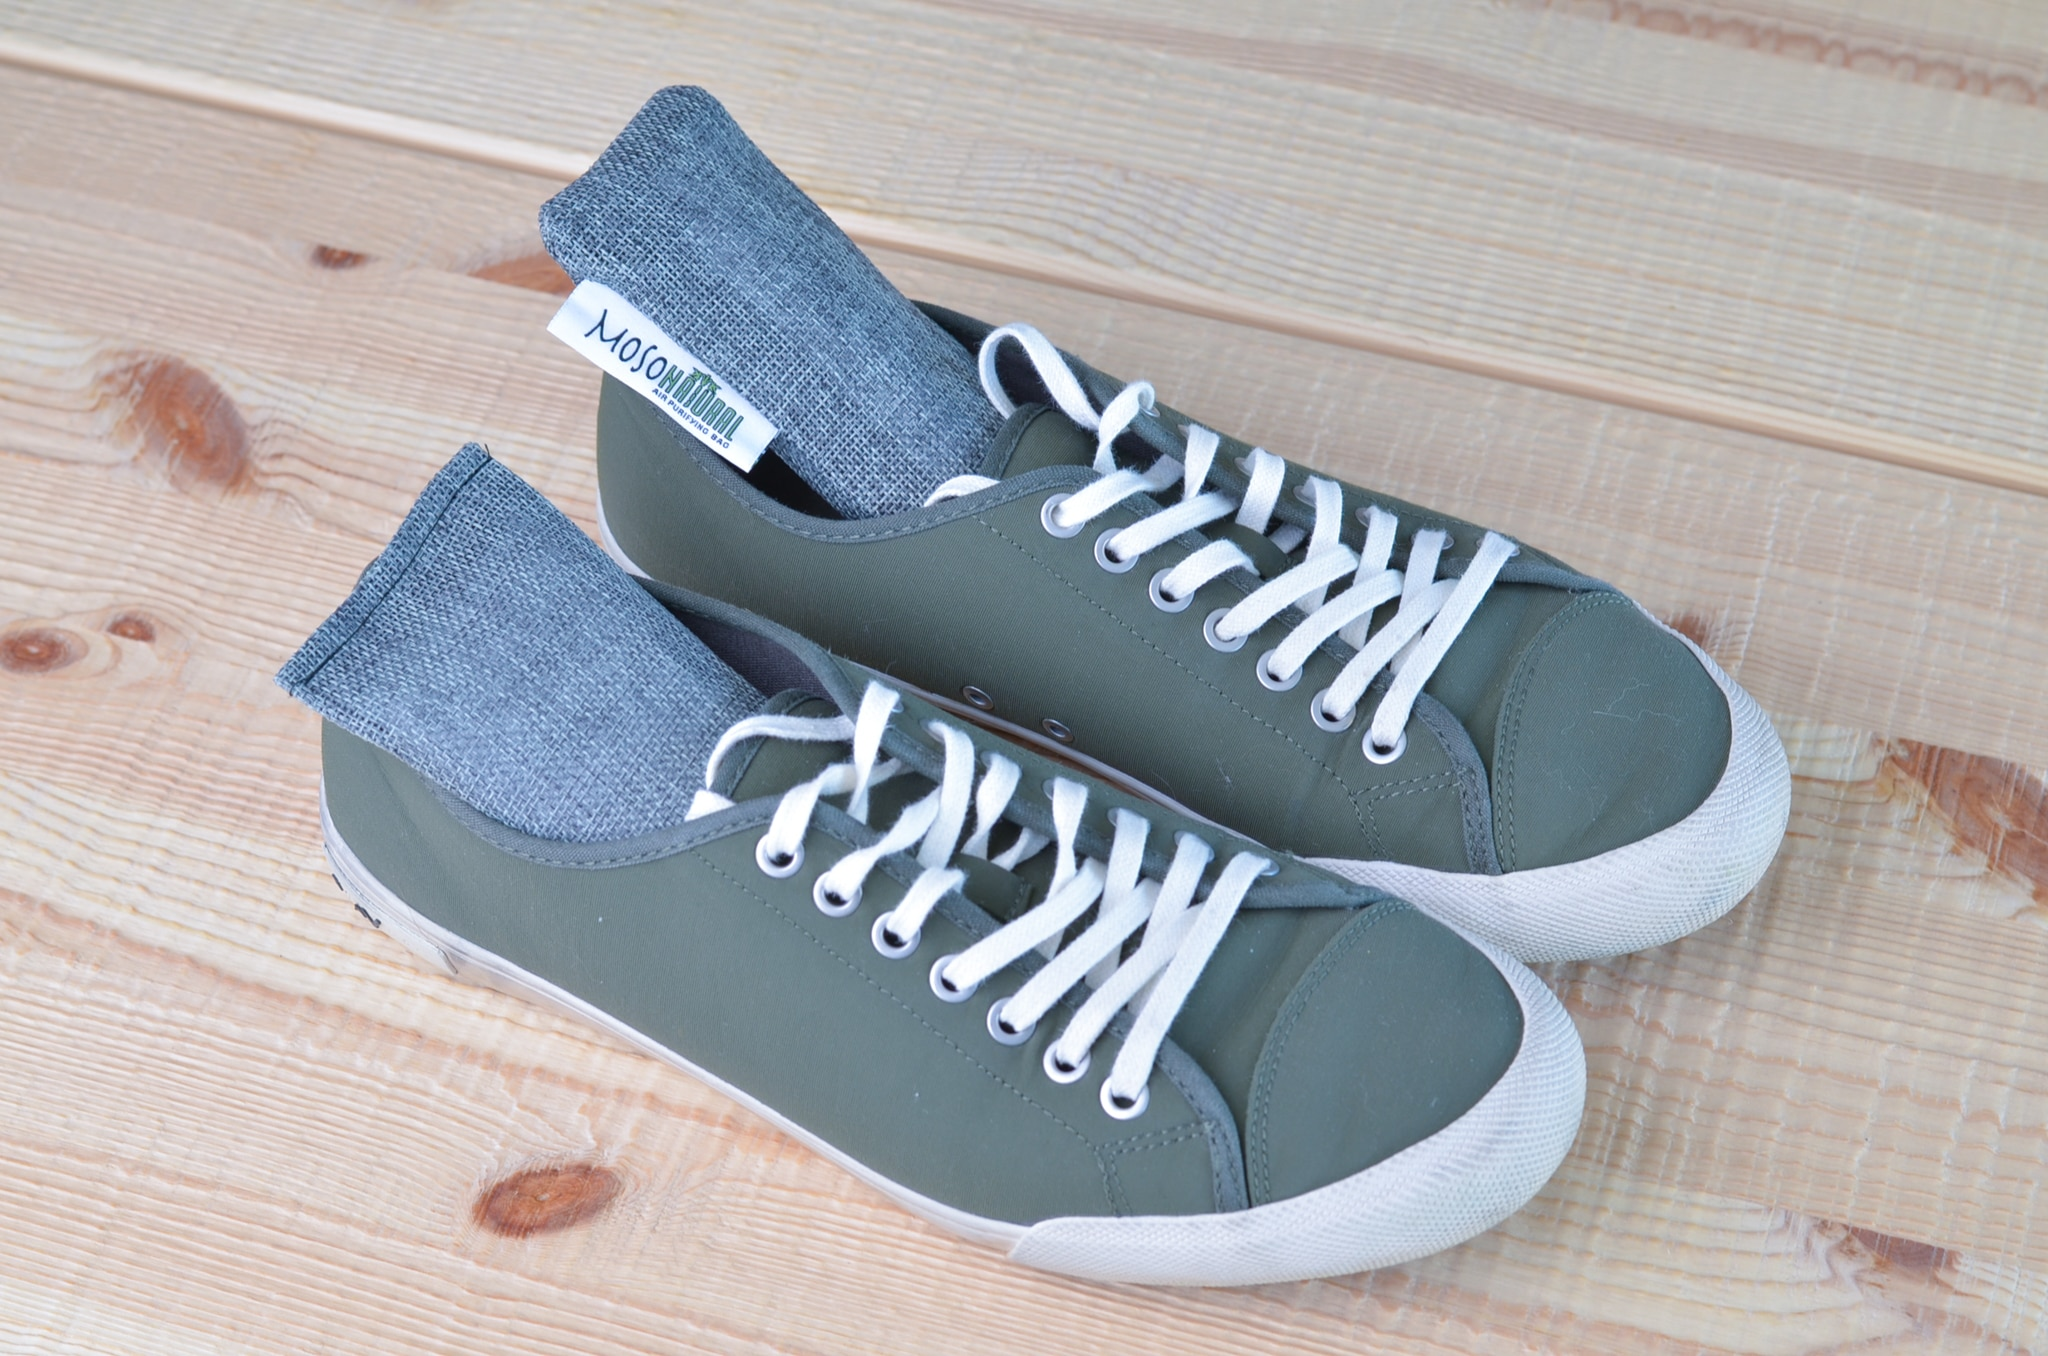 Deodorizer shoes with moso natural minis